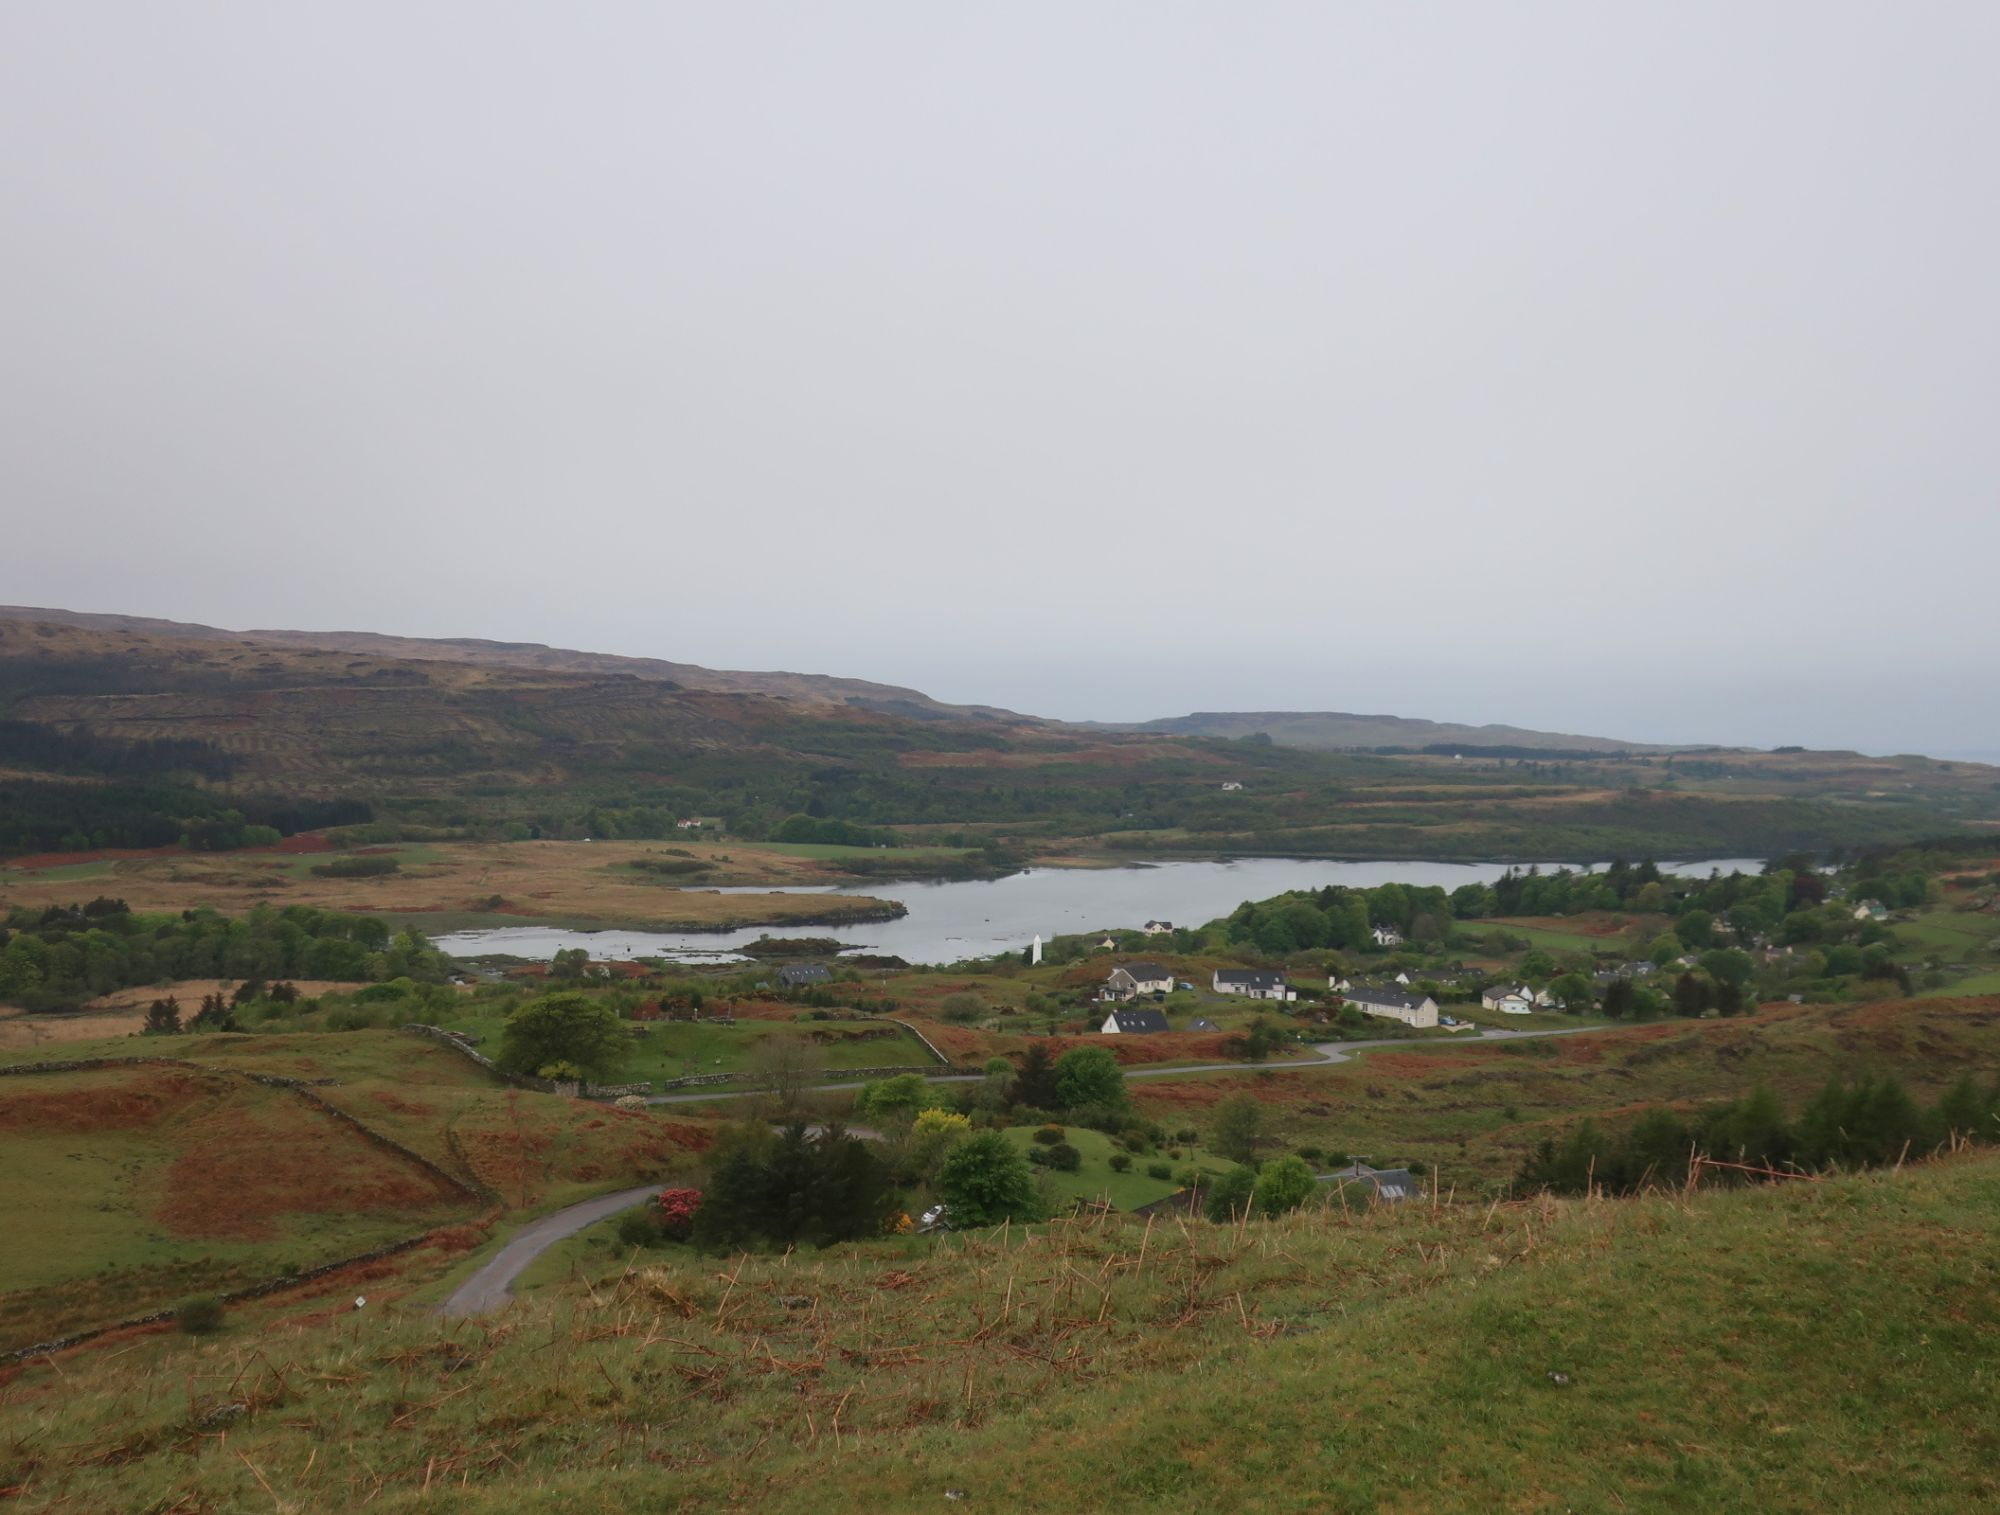 View from the standing stones